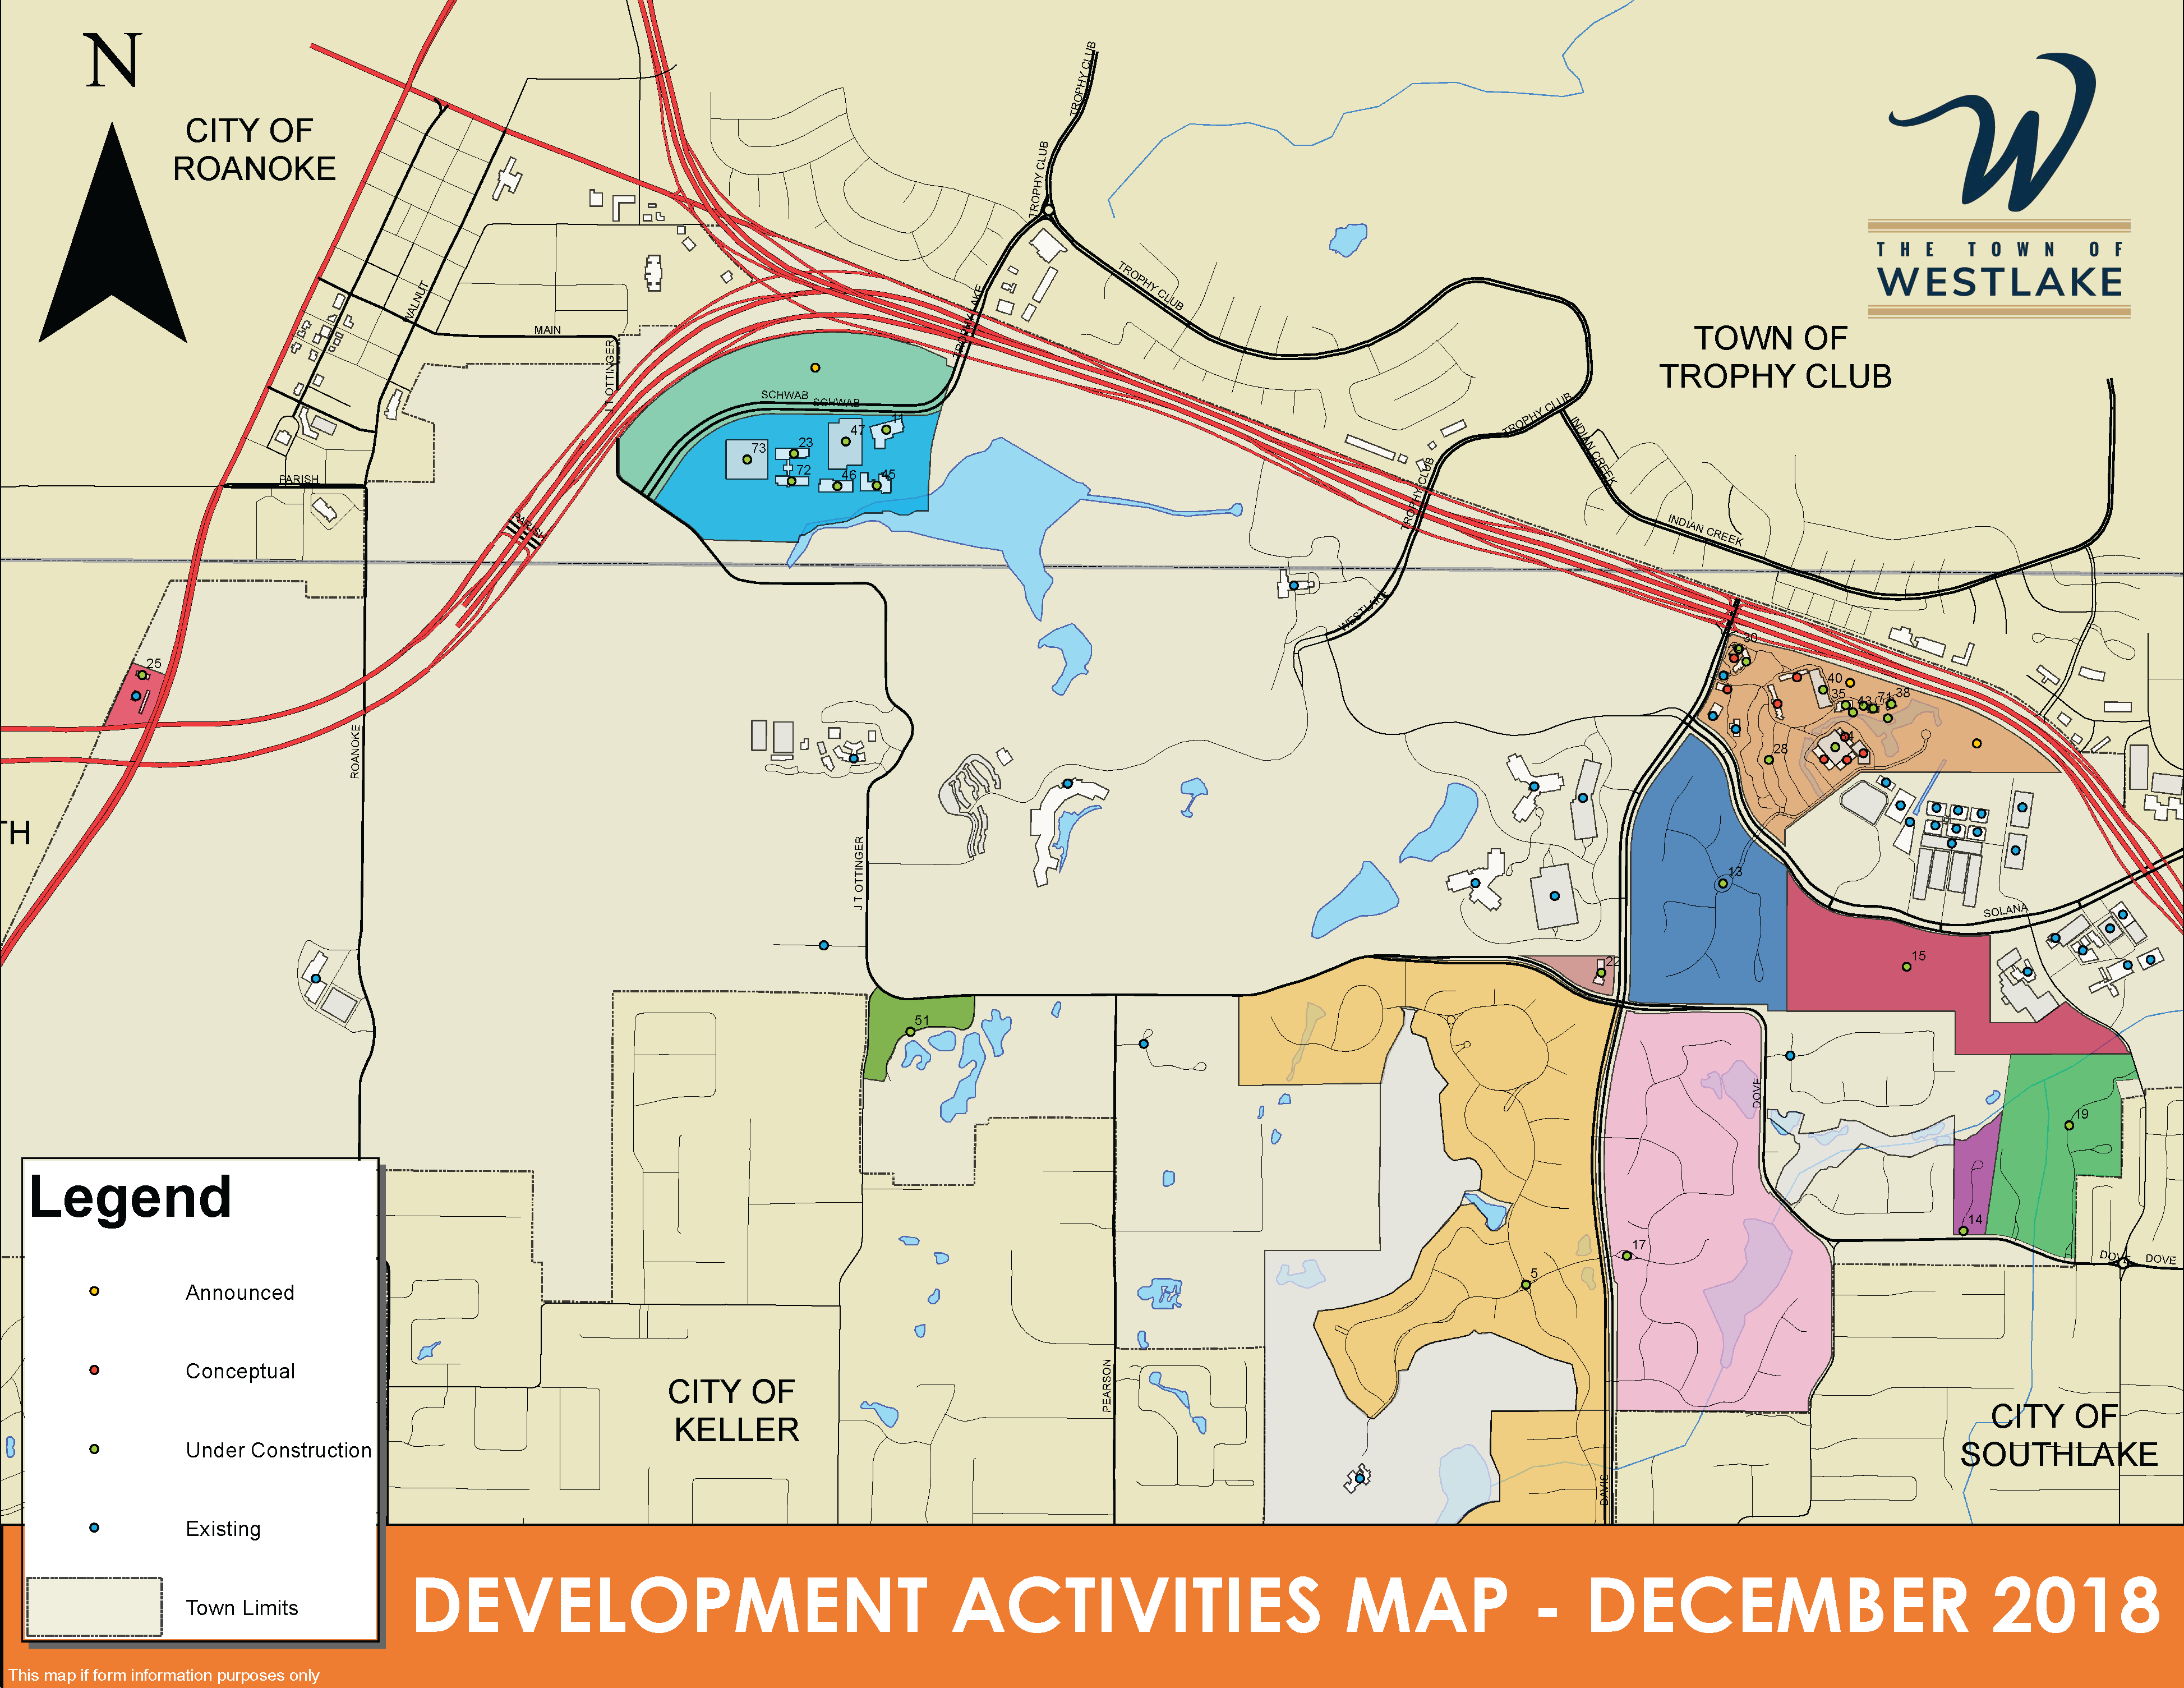 Development Activities Map